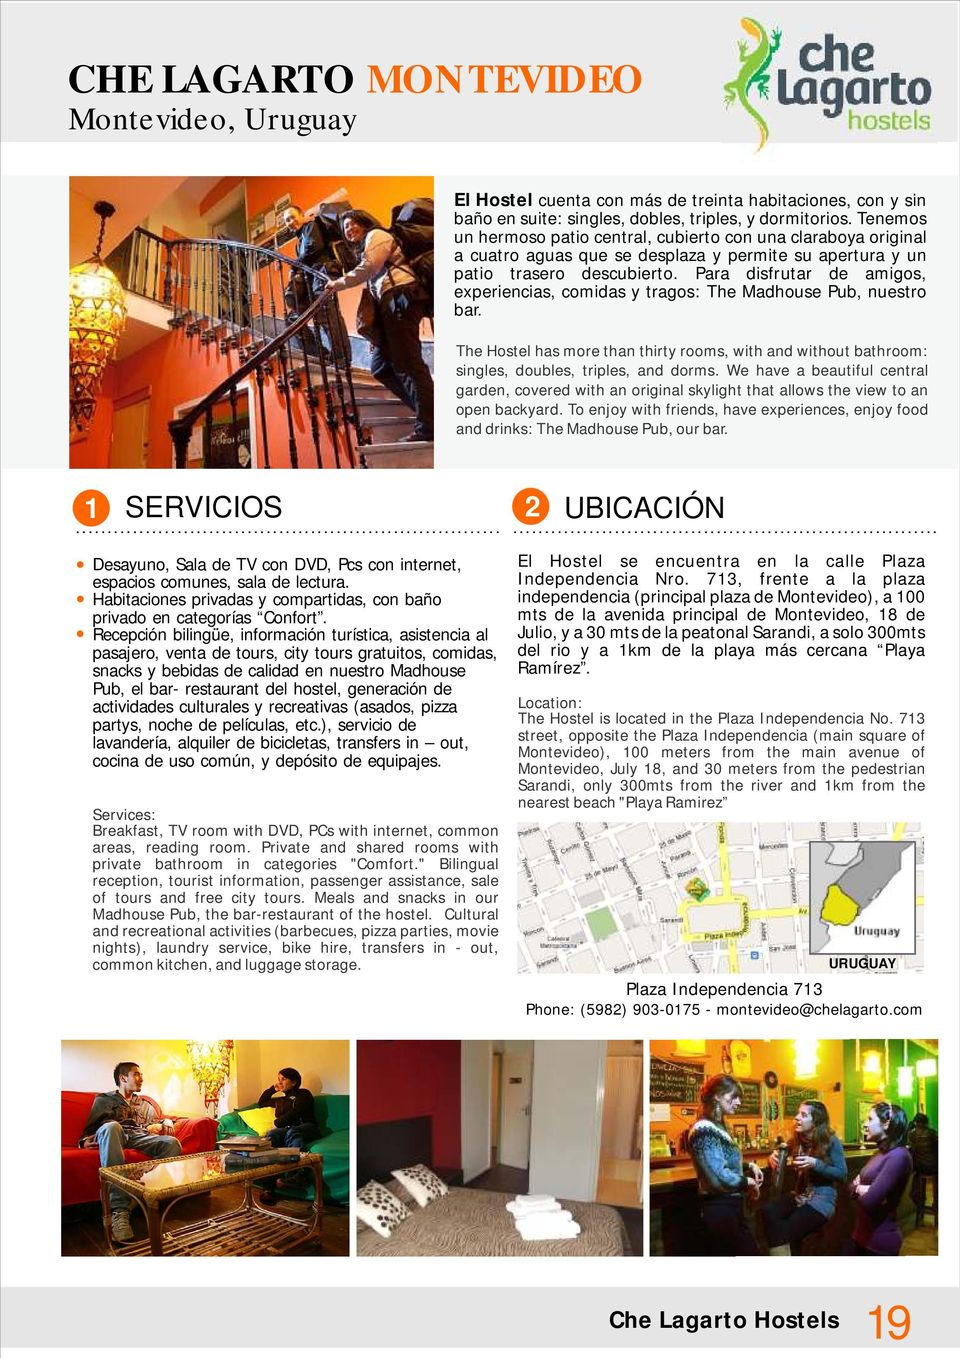 Para disfrutar de amigos, experiencias, comidas y tragos: The Madhouse Pub, nuestro bar. The Hostel has more than thirty rooms, with and without bathroom: singles, doubles, triples, and dorms.